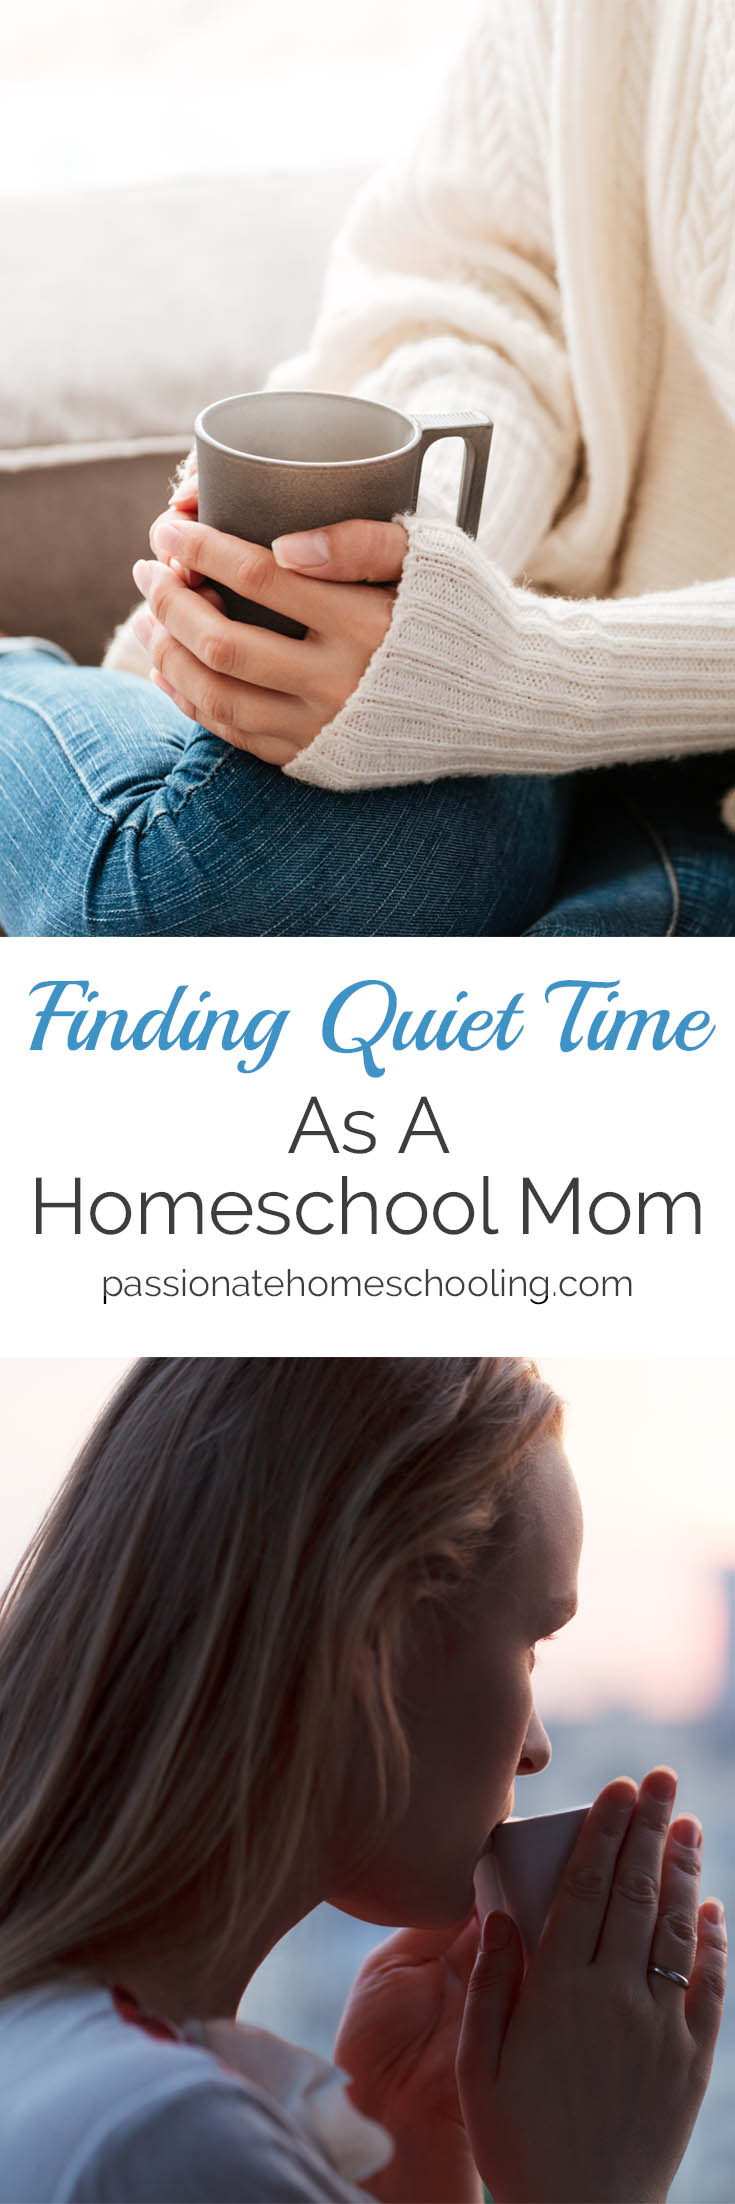 How to find quiet time when you're a busy homeschool mom. www.passionatehomeschooling.com